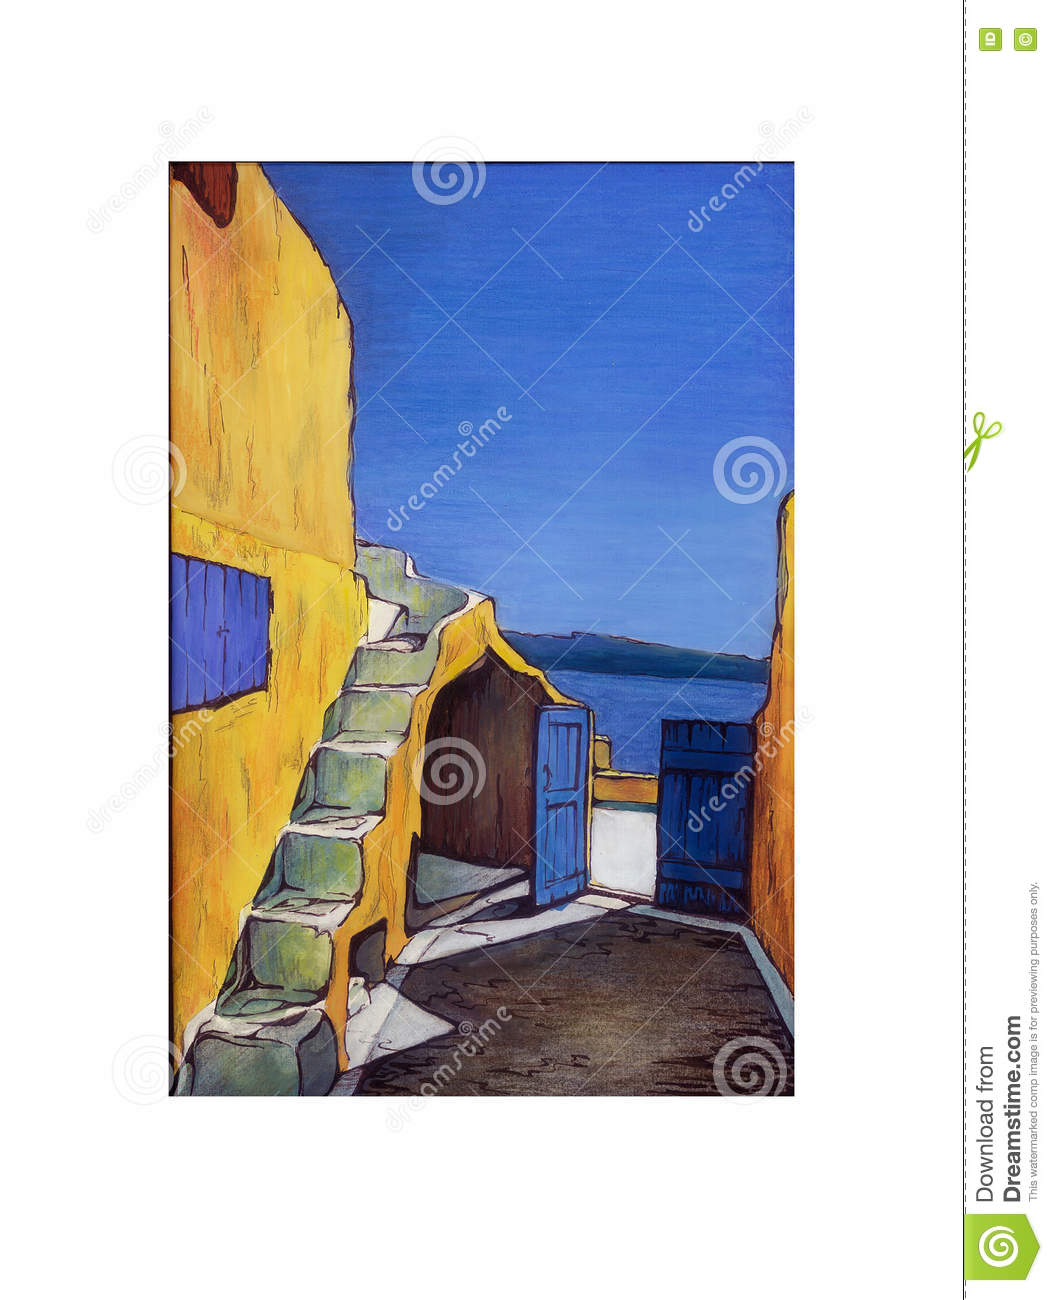 Patio in an old house in greece island in the sea summer painting freehand drawing in color modern painting art yellow blue